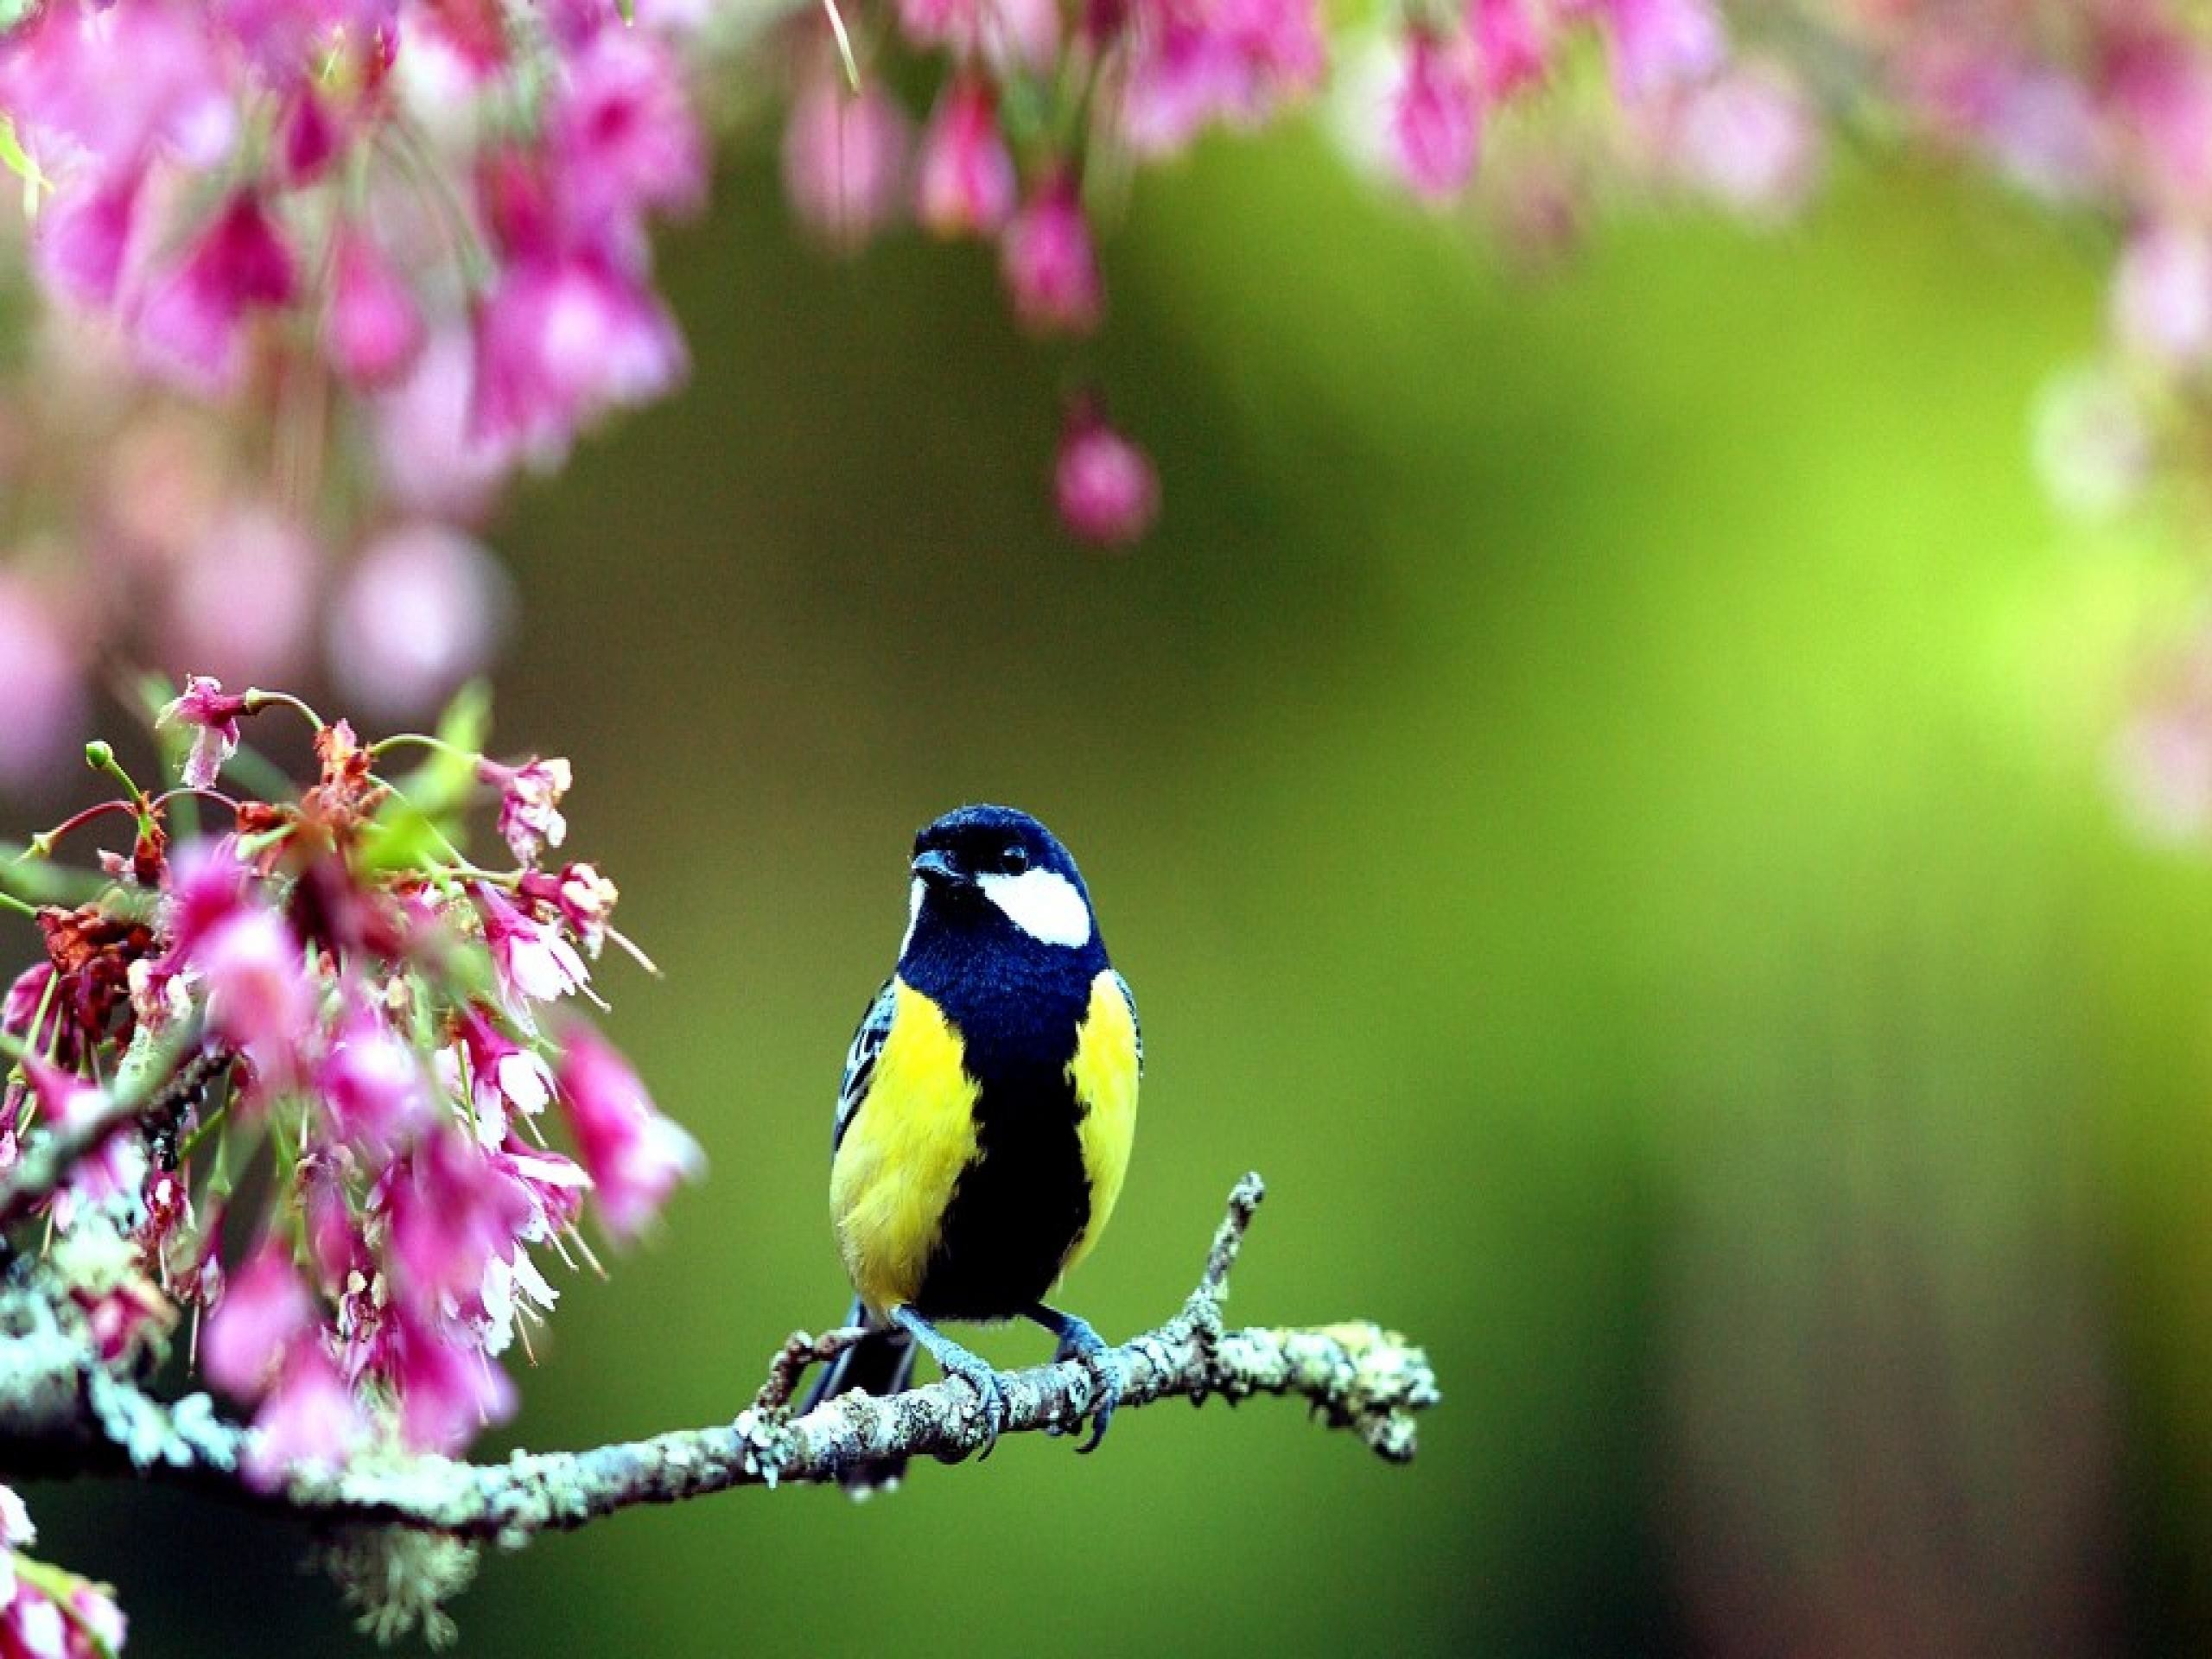 2560x1920 Spring Flowers And Birds Wallpaper W Impex Wallimpex Com